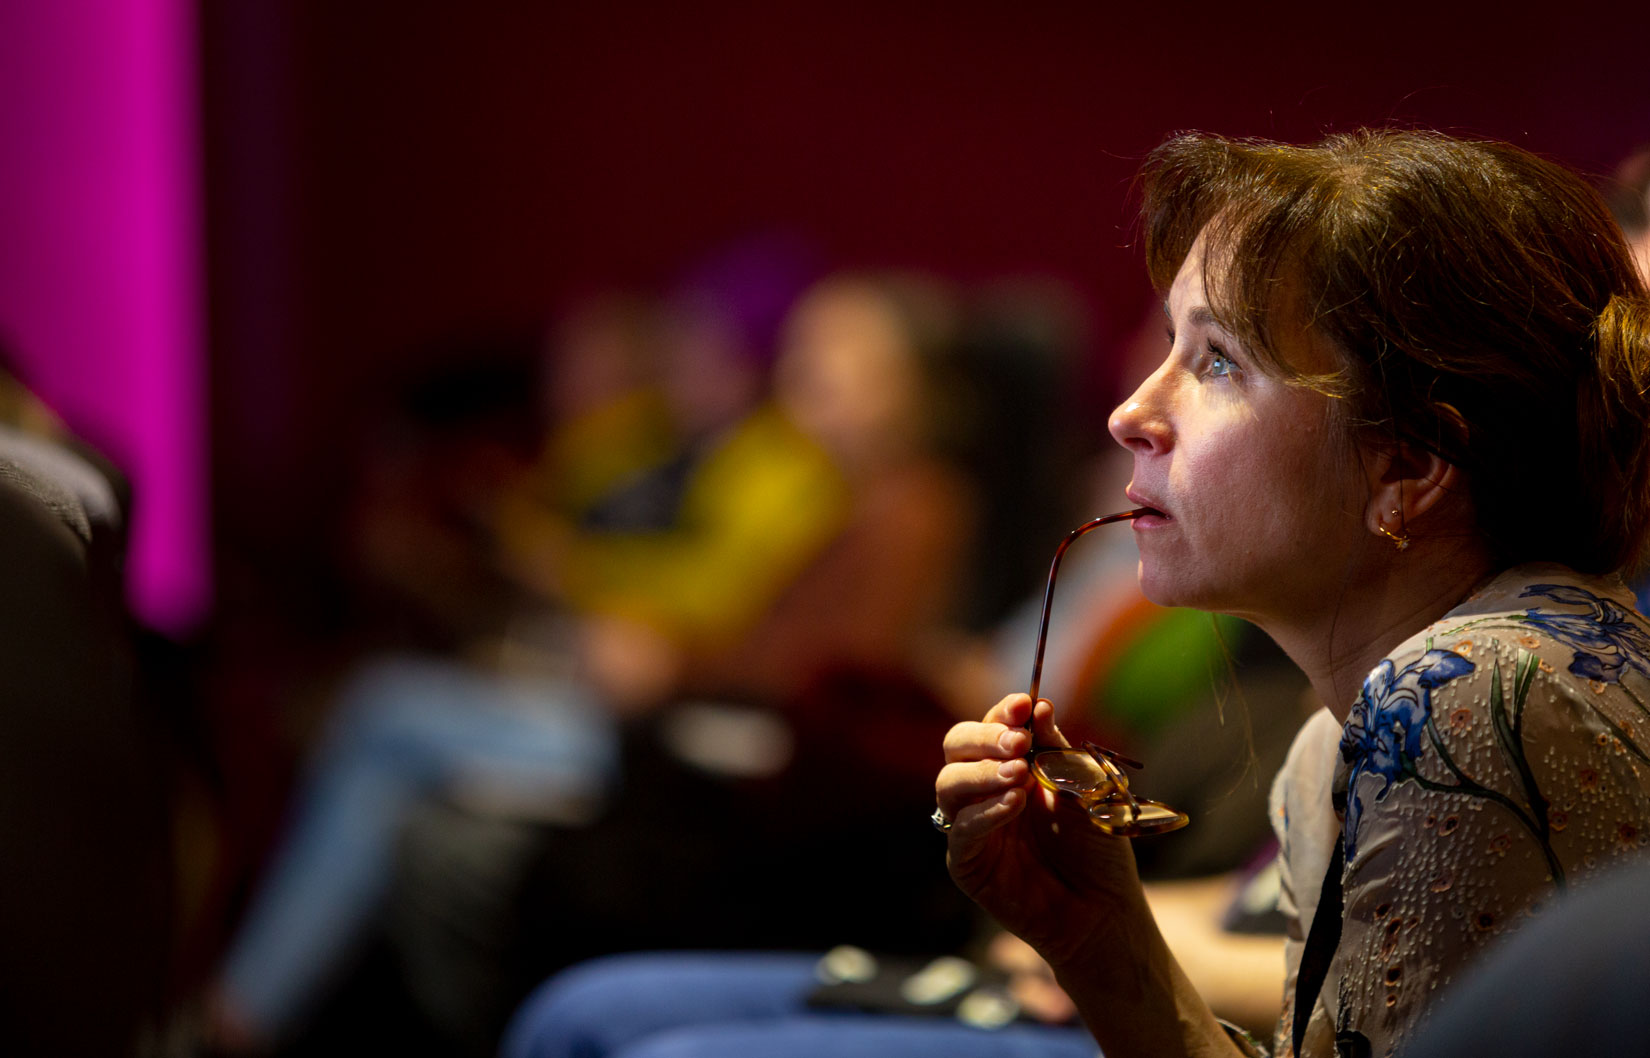 Side head and shoulders shot of woman totally absorbed watching film at Broadway Cinema